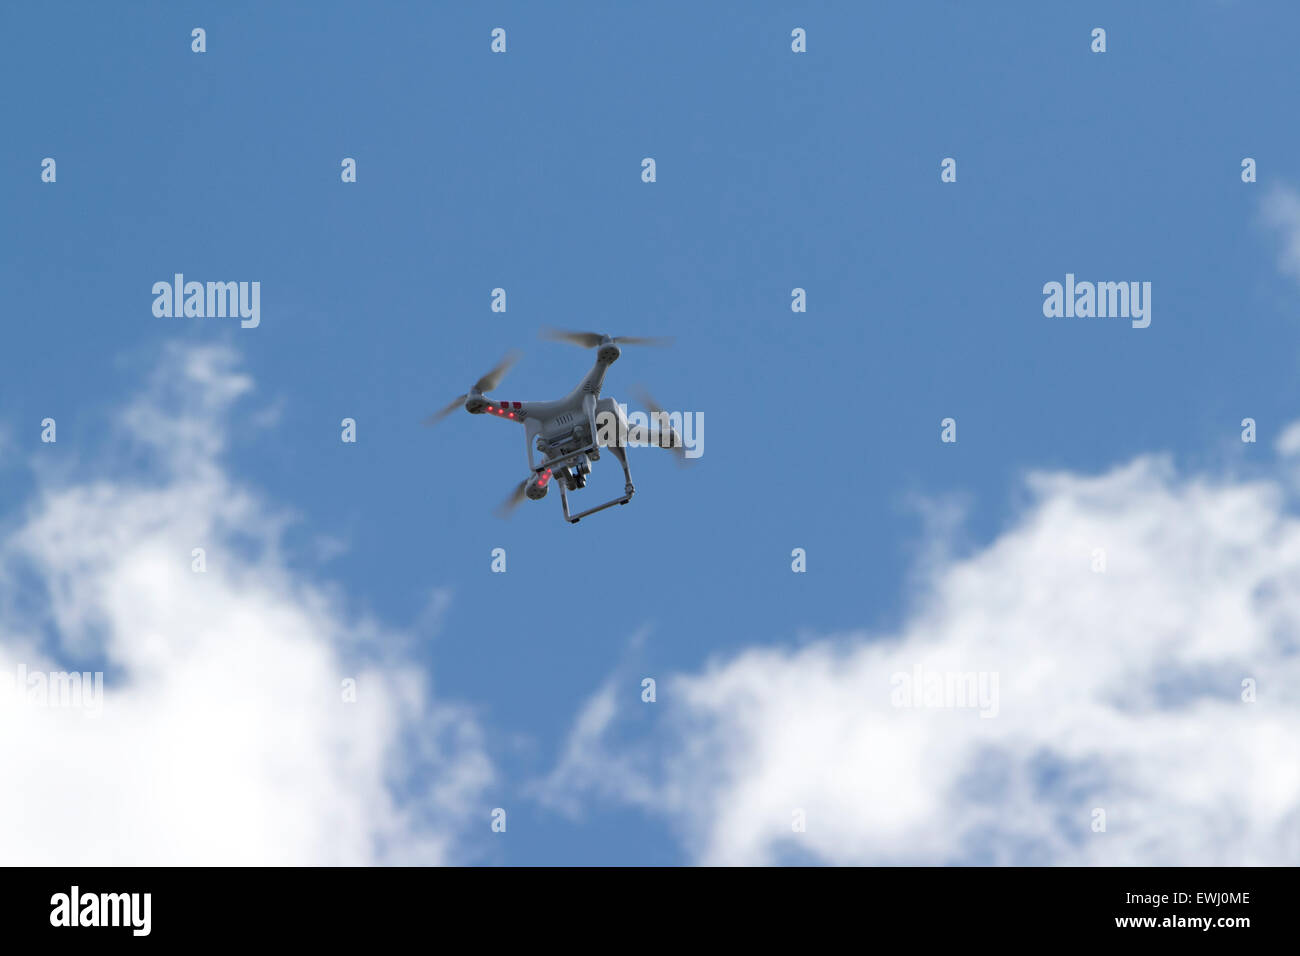 dji phantom remote drone camera flying against blue sky - Stock Image